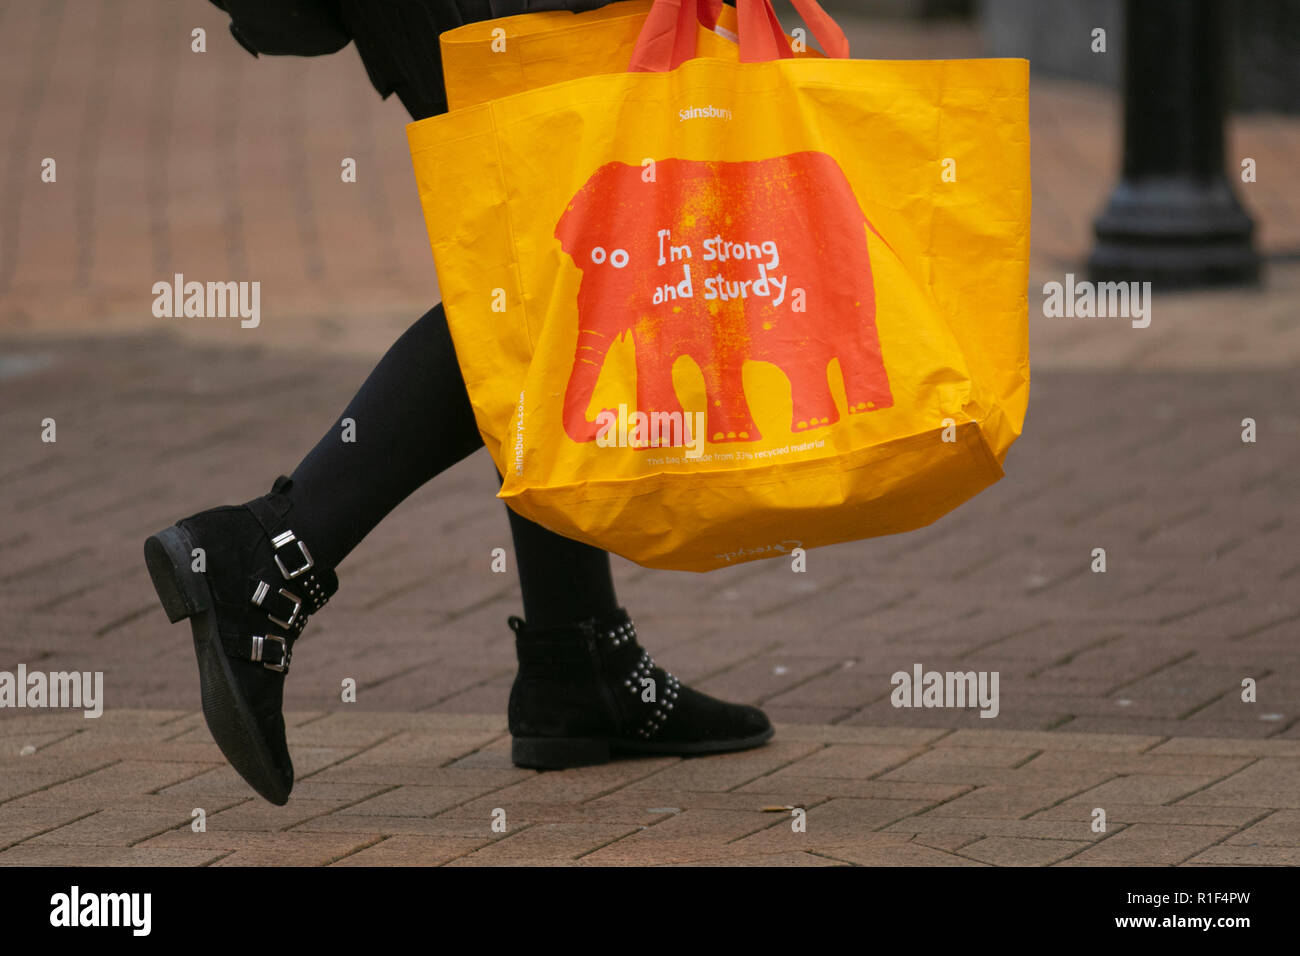 c214b4c2ce76d Blackpool, Lancashire, UK. 10th Nov, 2018. Sports Direct, (Sports Direct  International plc) Shoppers, shopping and shops on a busy Christmas shopping  day in ...